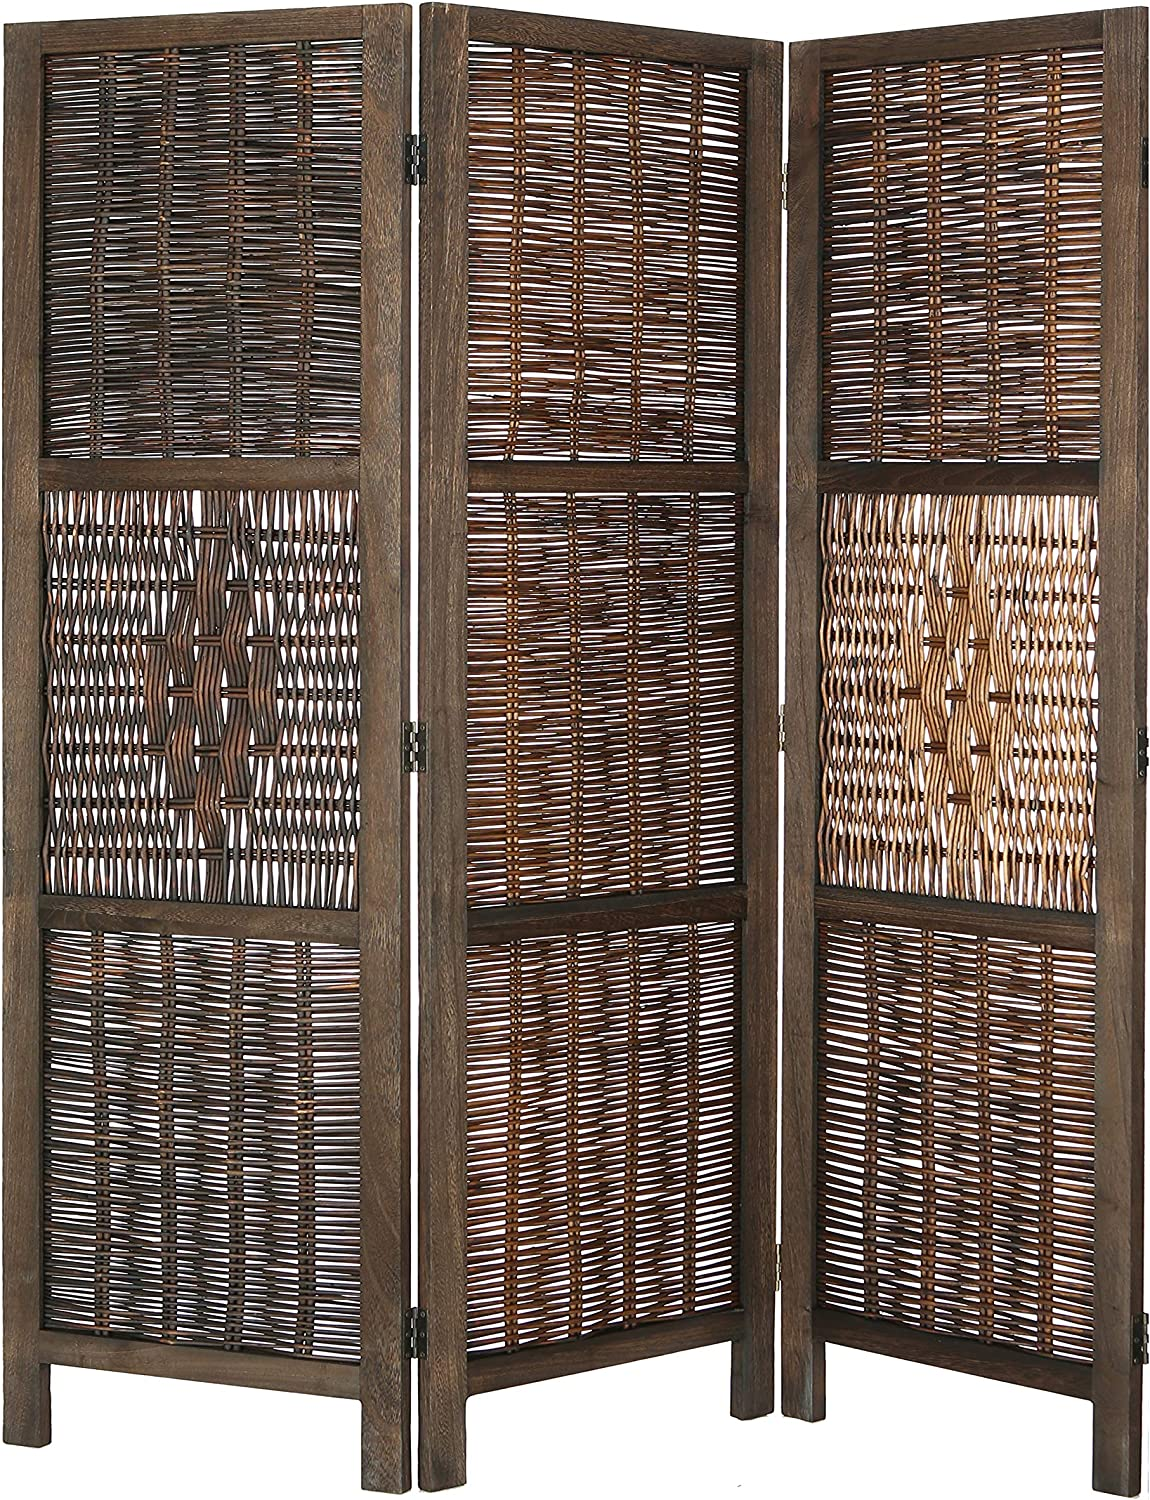 Legacy Decor 3 Panel Room Screen Divider Antique Brown Wicker and Wood Diamond Design